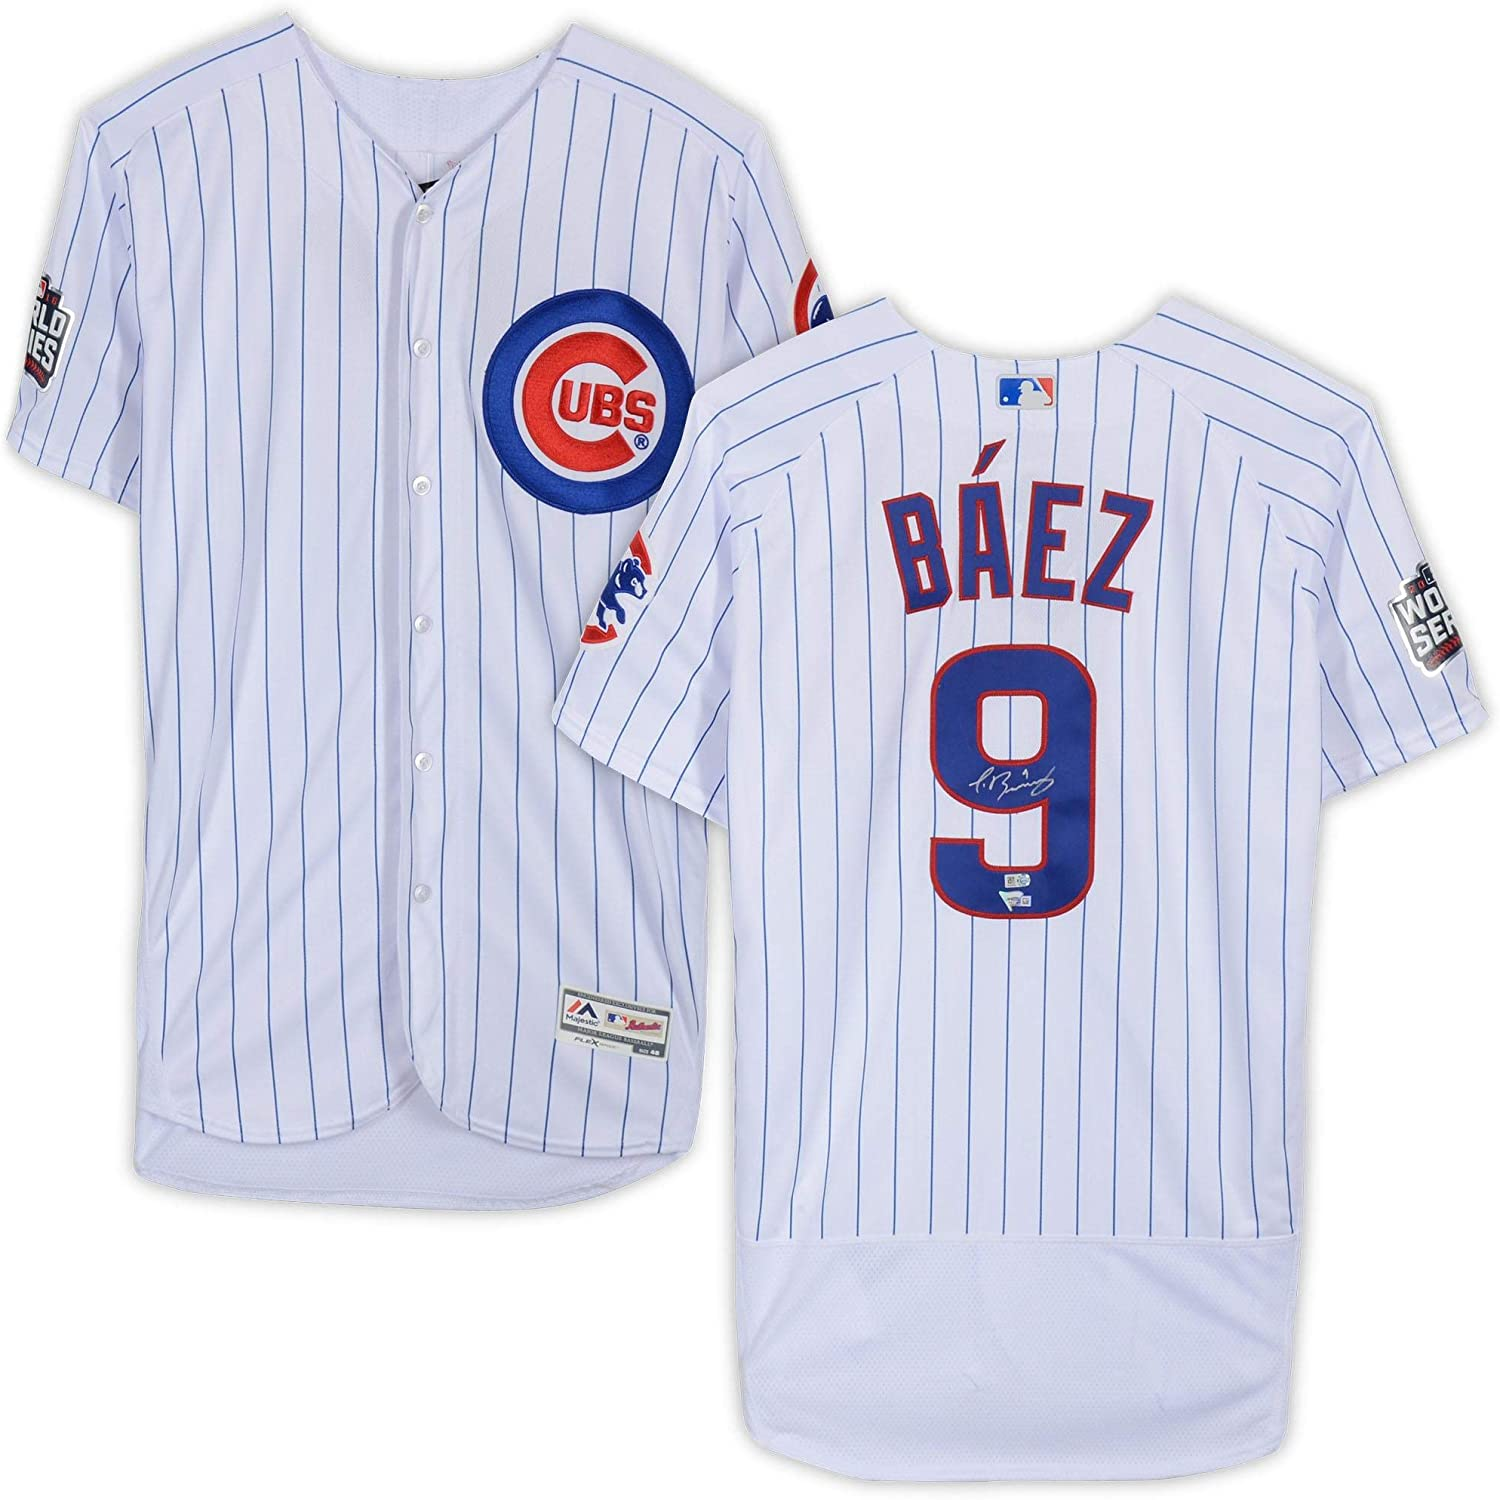 Javier Baez Chicago Cubs 2016 World